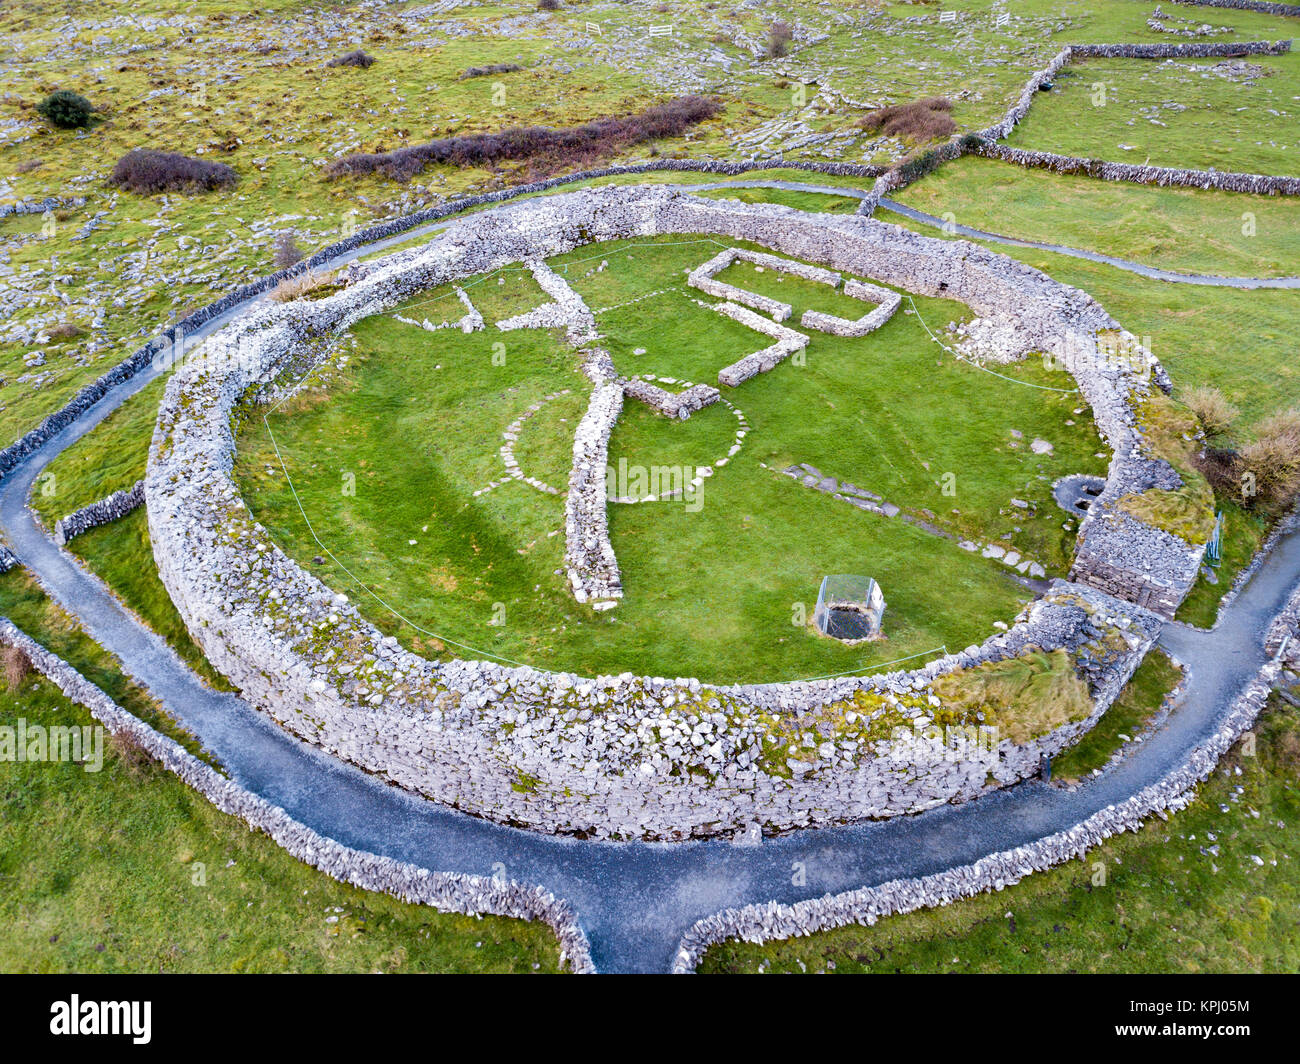 Caherconnell Celtic stone fort, Early Middle Age in Burren Region, County Clare, Ireland - Stock Image